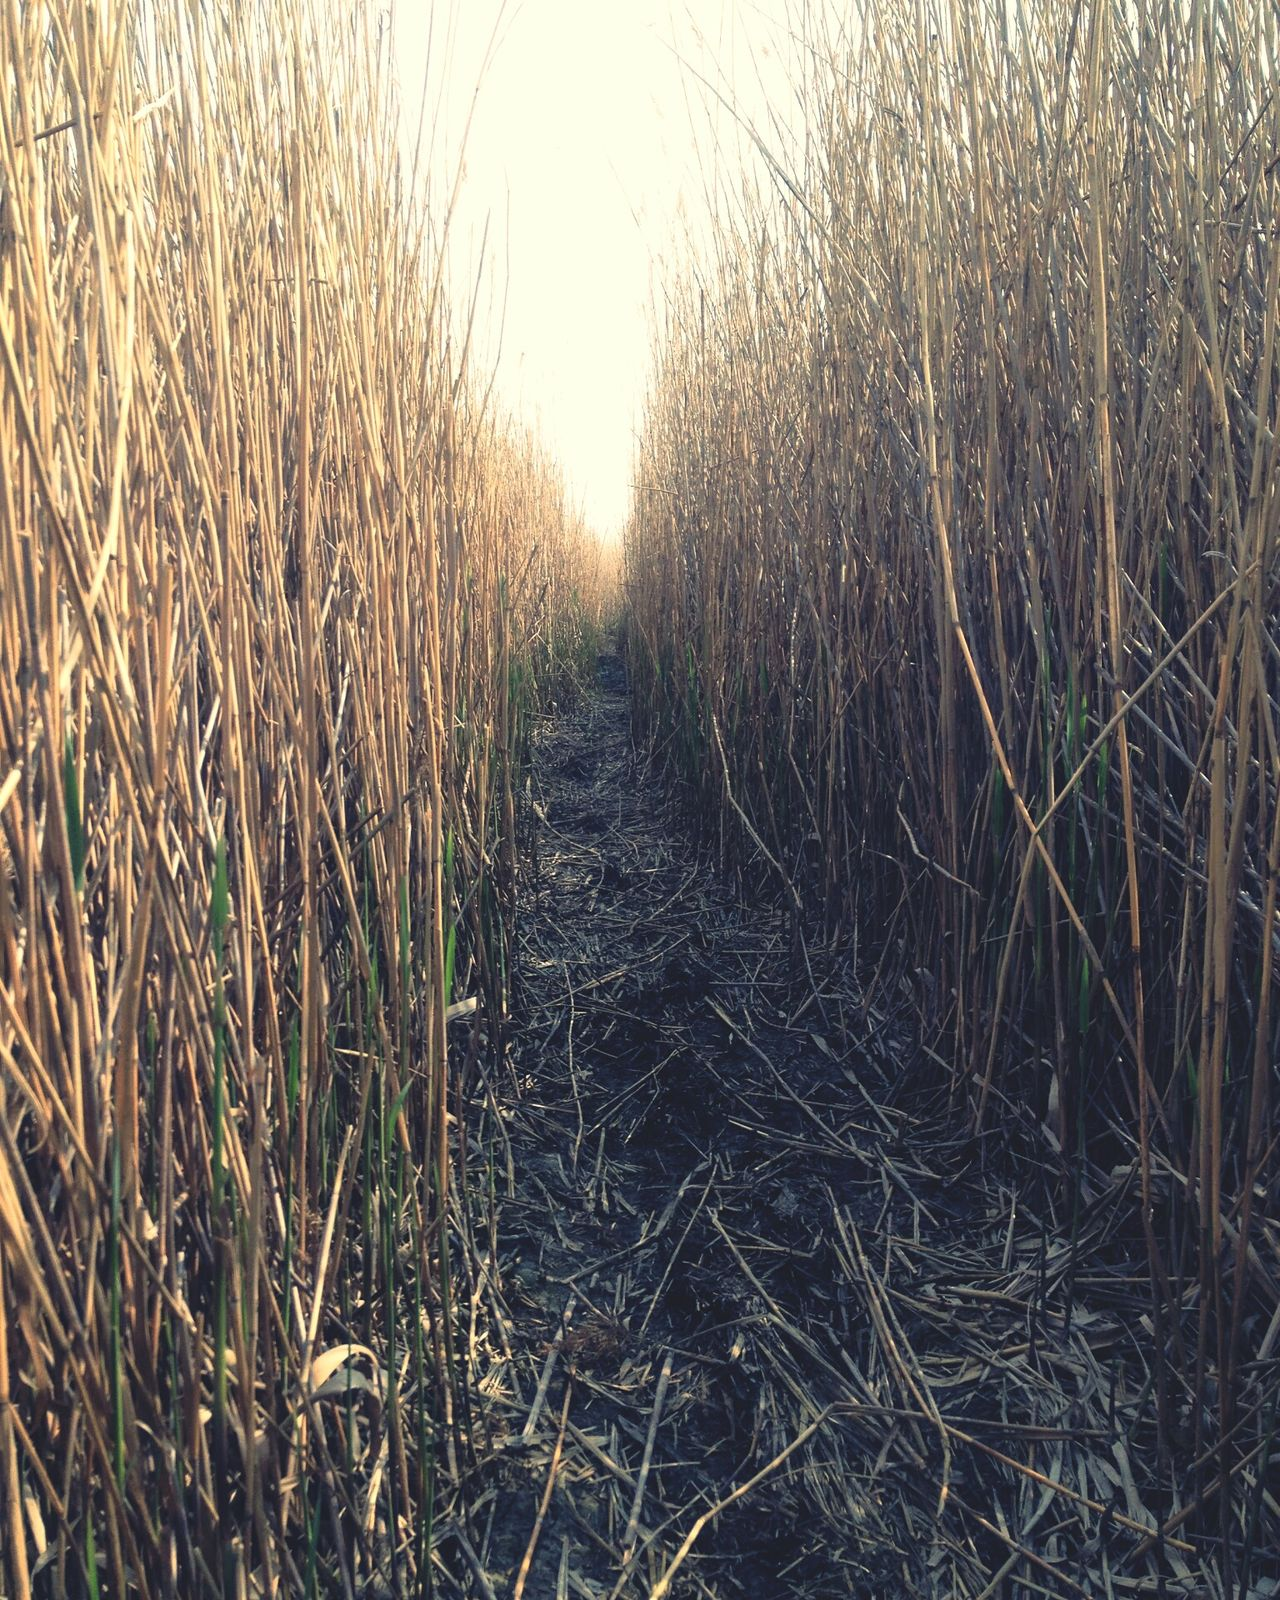 Path Pathway Pathways Paths Reeds Reed Freedom Freedoom  Free Time FreeTime Free Nature Naturelovers